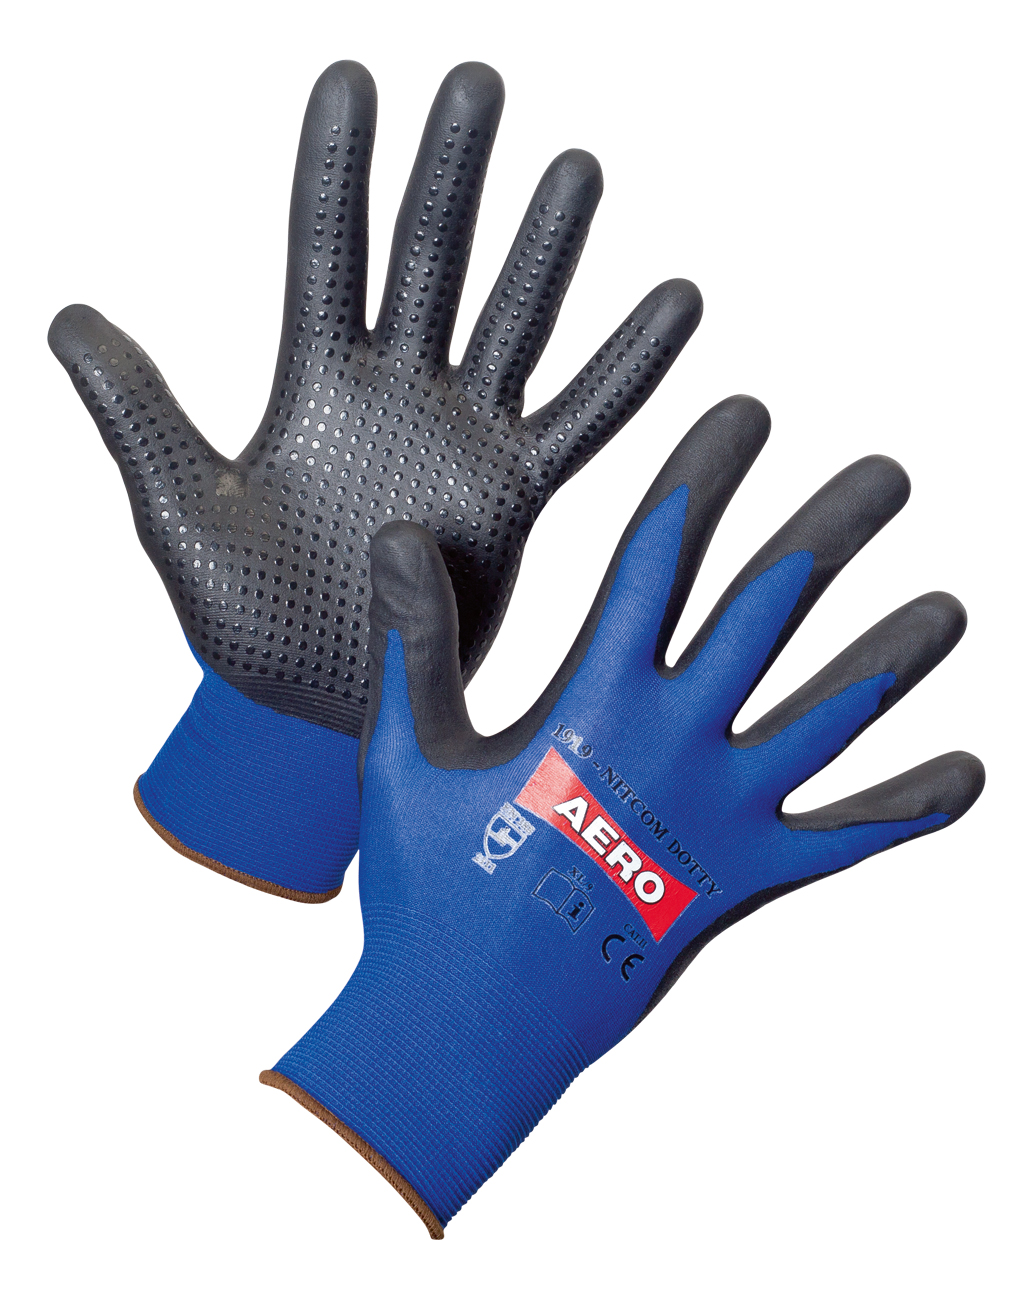 AERO Gloves NitroFoam Dot 1919, with PVC dots